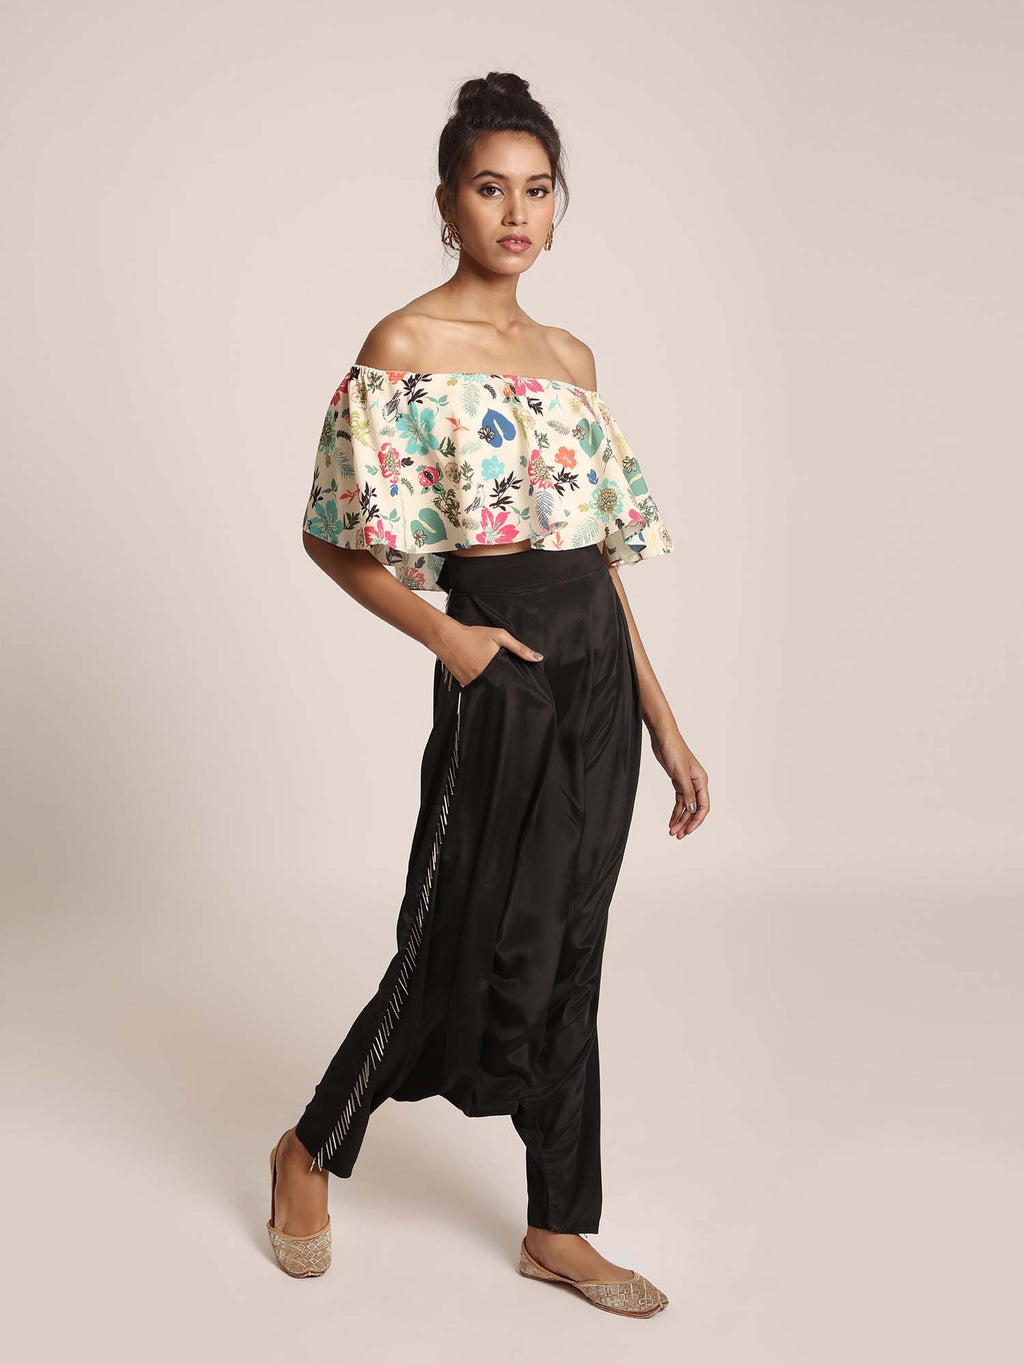 Cream Printed Art Crepe Ruffle Off Shoulder Top with Black Art Crepe Low Crotch Pant - Riviera Closet